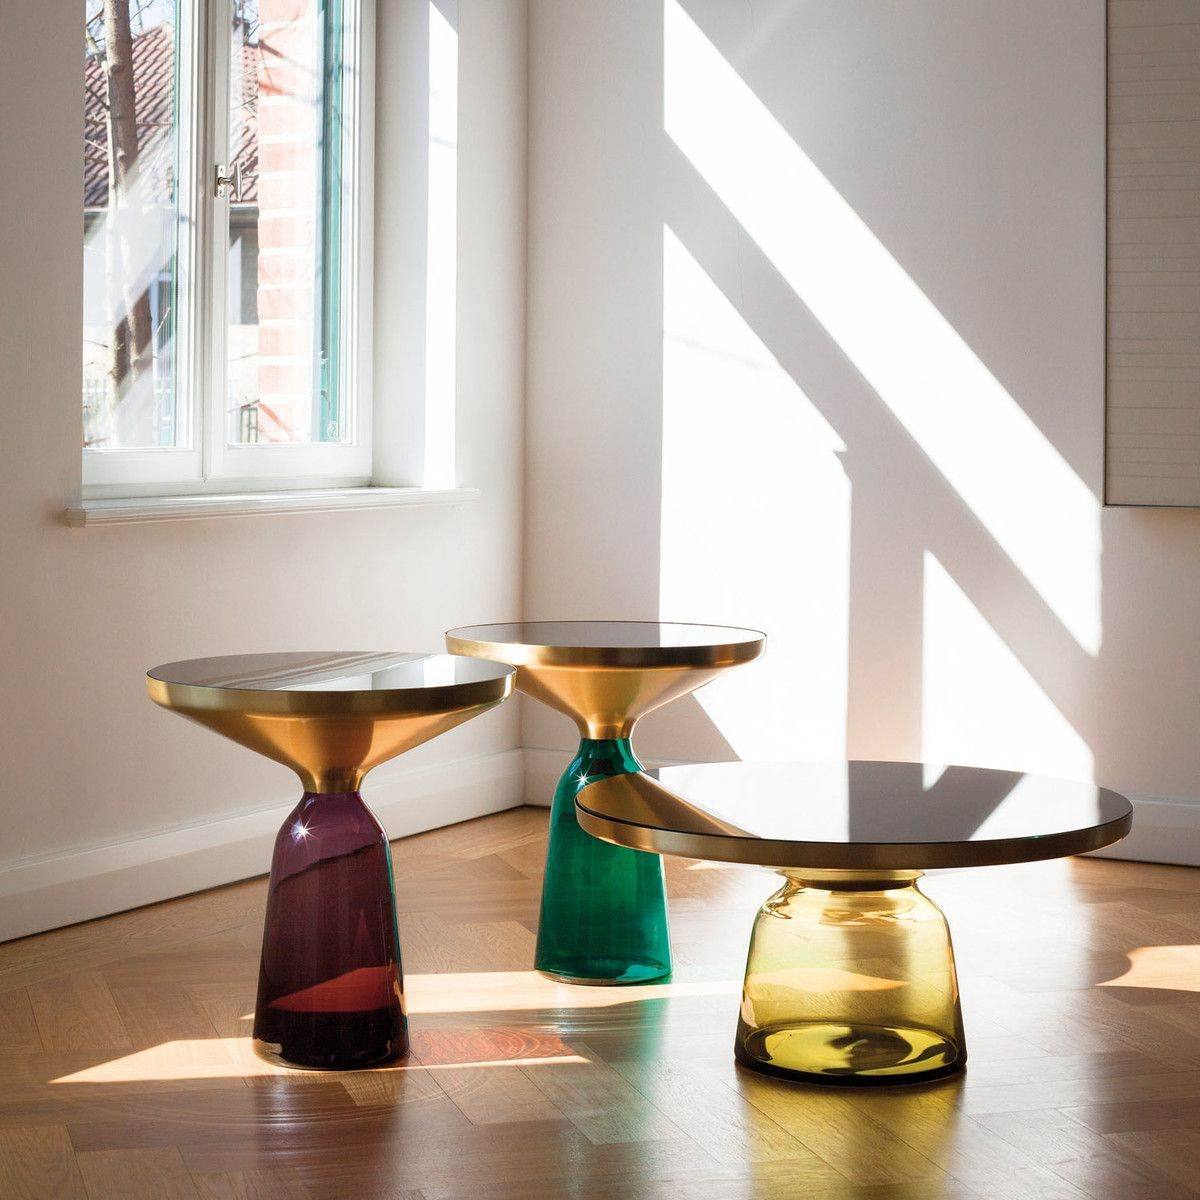 Furniture Design Trends 2015 classicon - bell beistelltisch, messing / amethyst violett | night